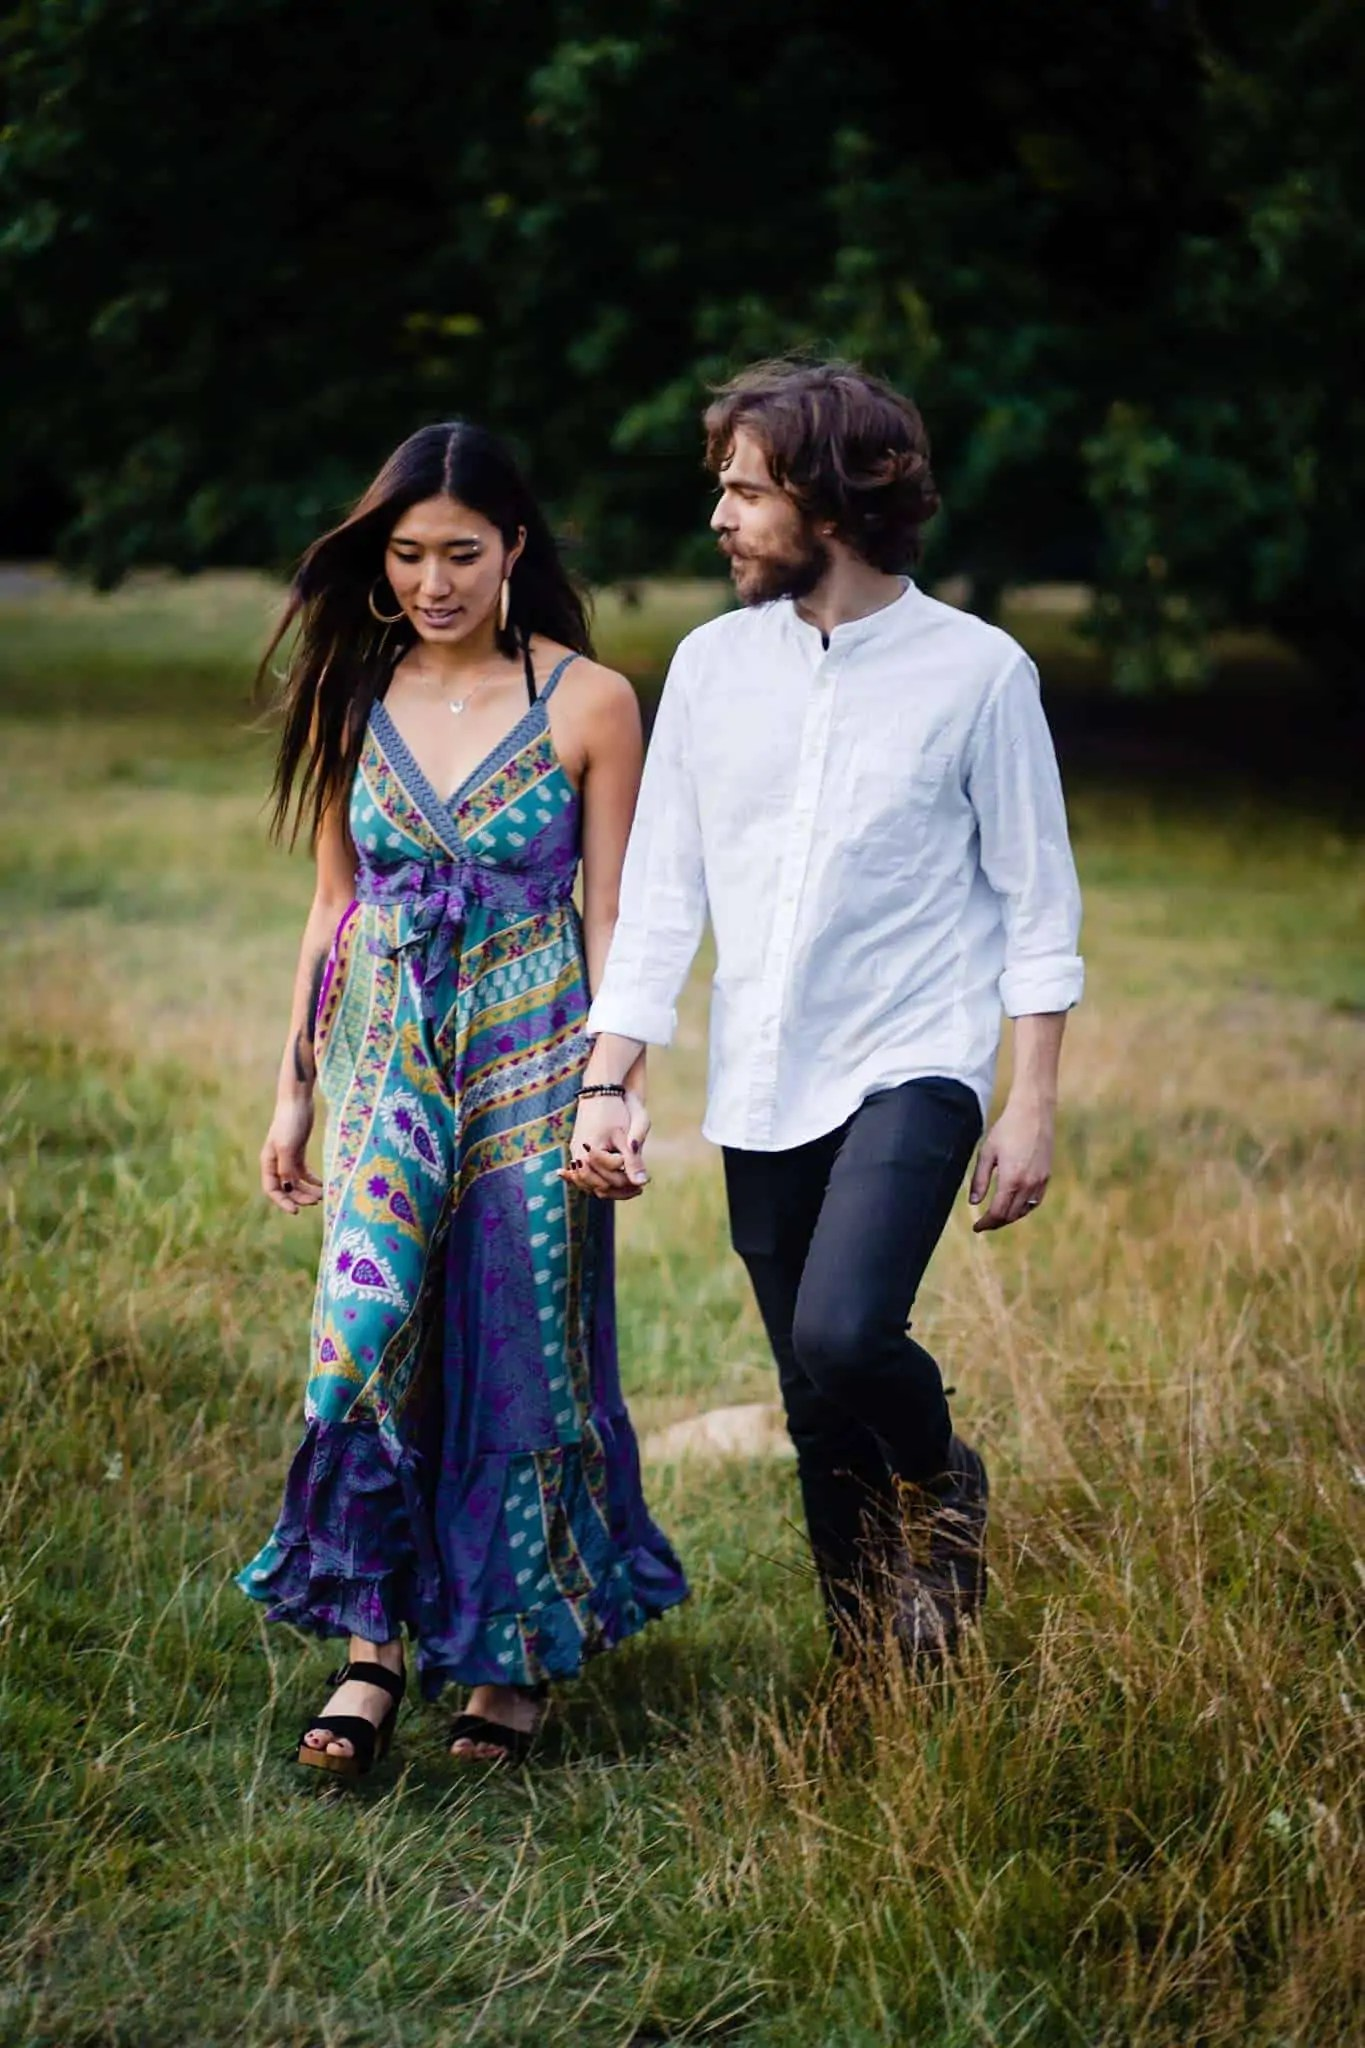 An engaged couple walking through Hampstead Heath on an engagement shoot